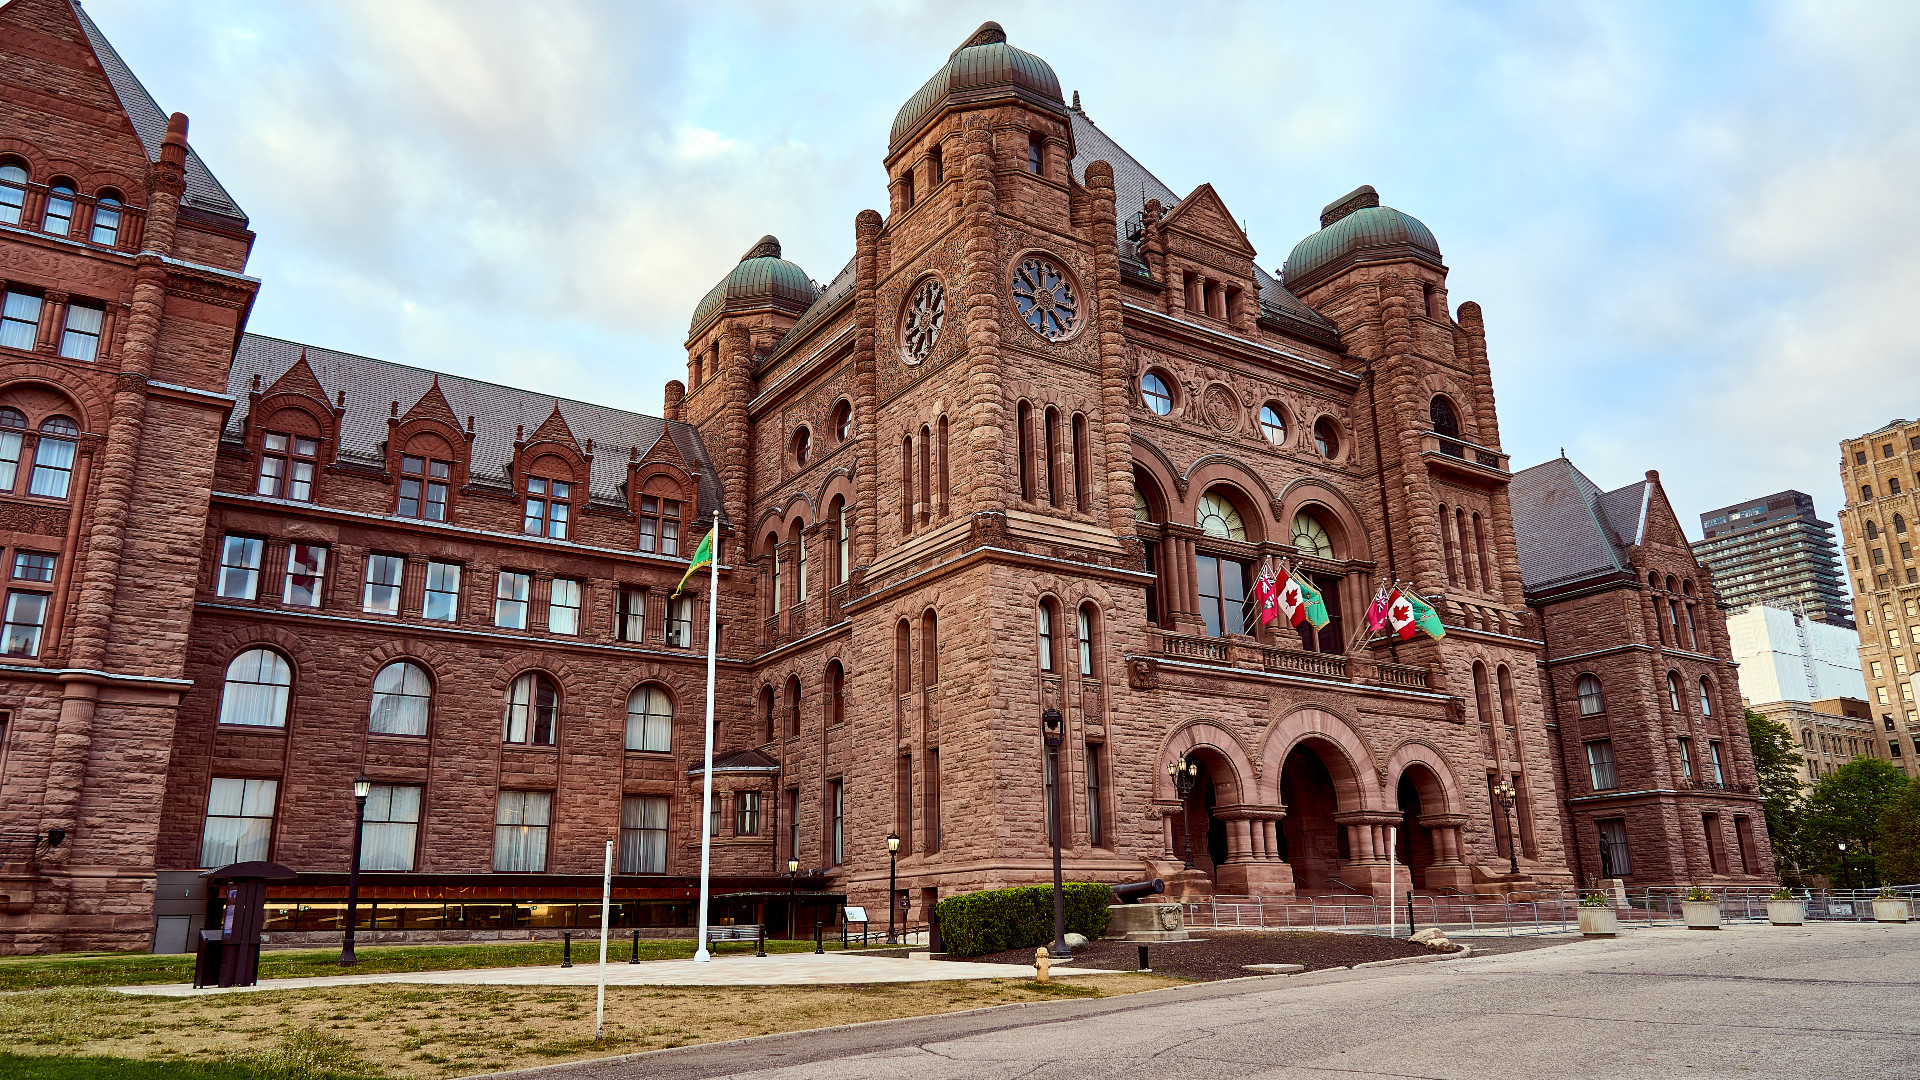 Provincial deficit less than half of what was expected in the last fiscal year – CityNews Toronto